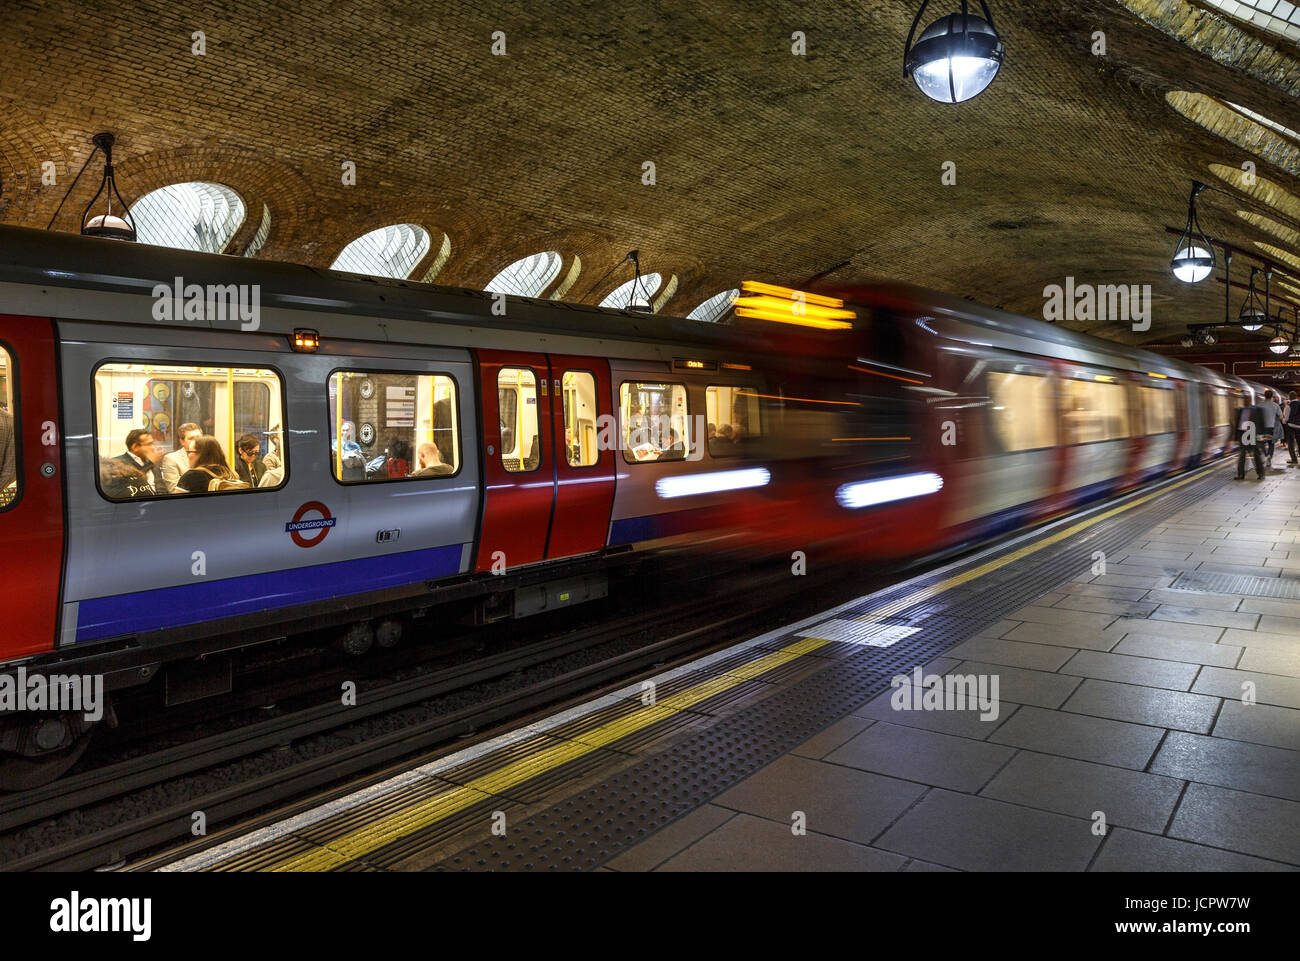 Underground (Tube) train car and another one streaking by, Baker Street Underground Station, London, England, United - Stock Image